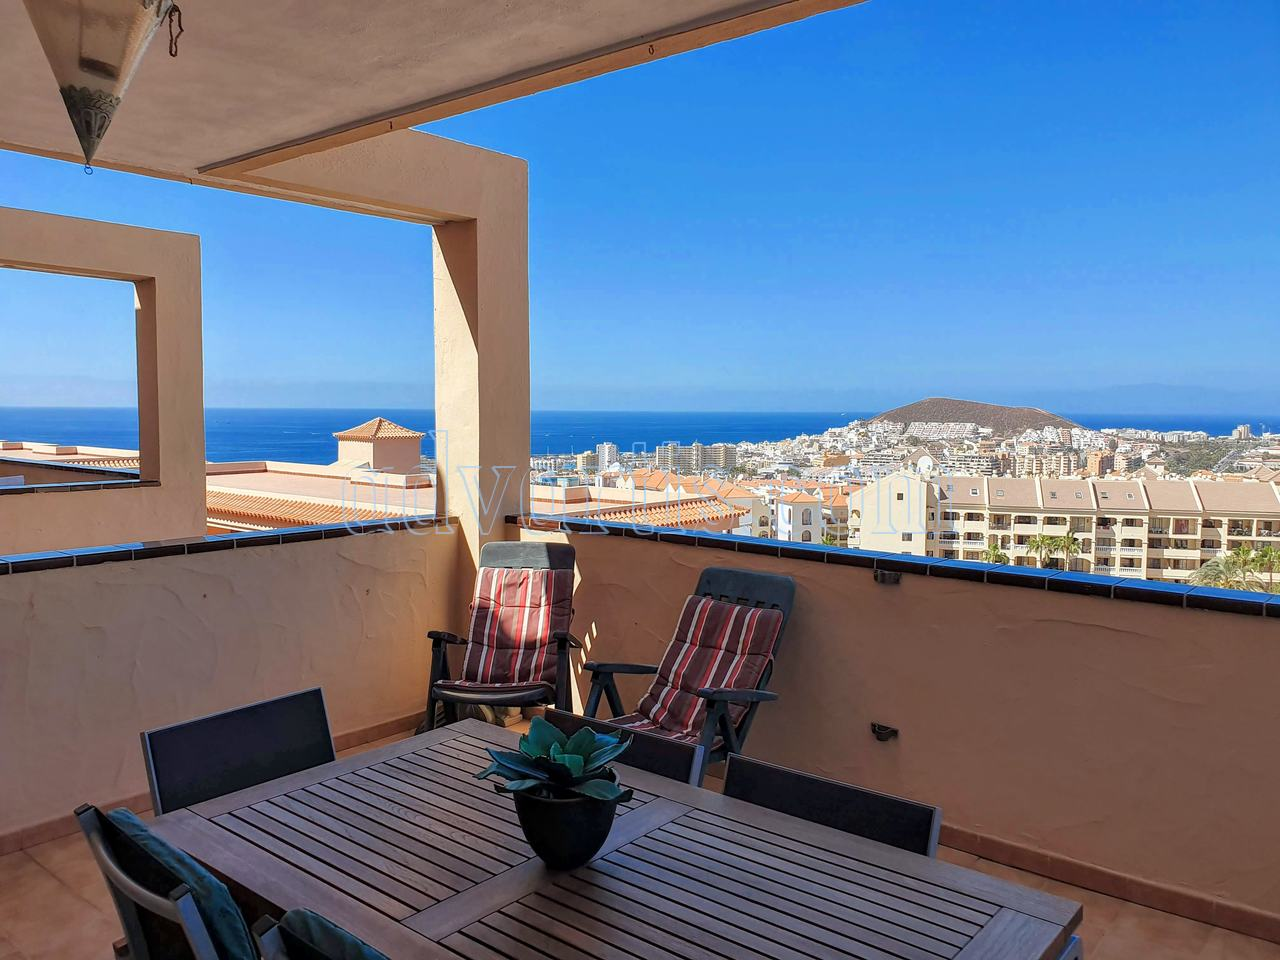 1 bedroom apartment for sale in Los Cristianos, Tenerife €175.000